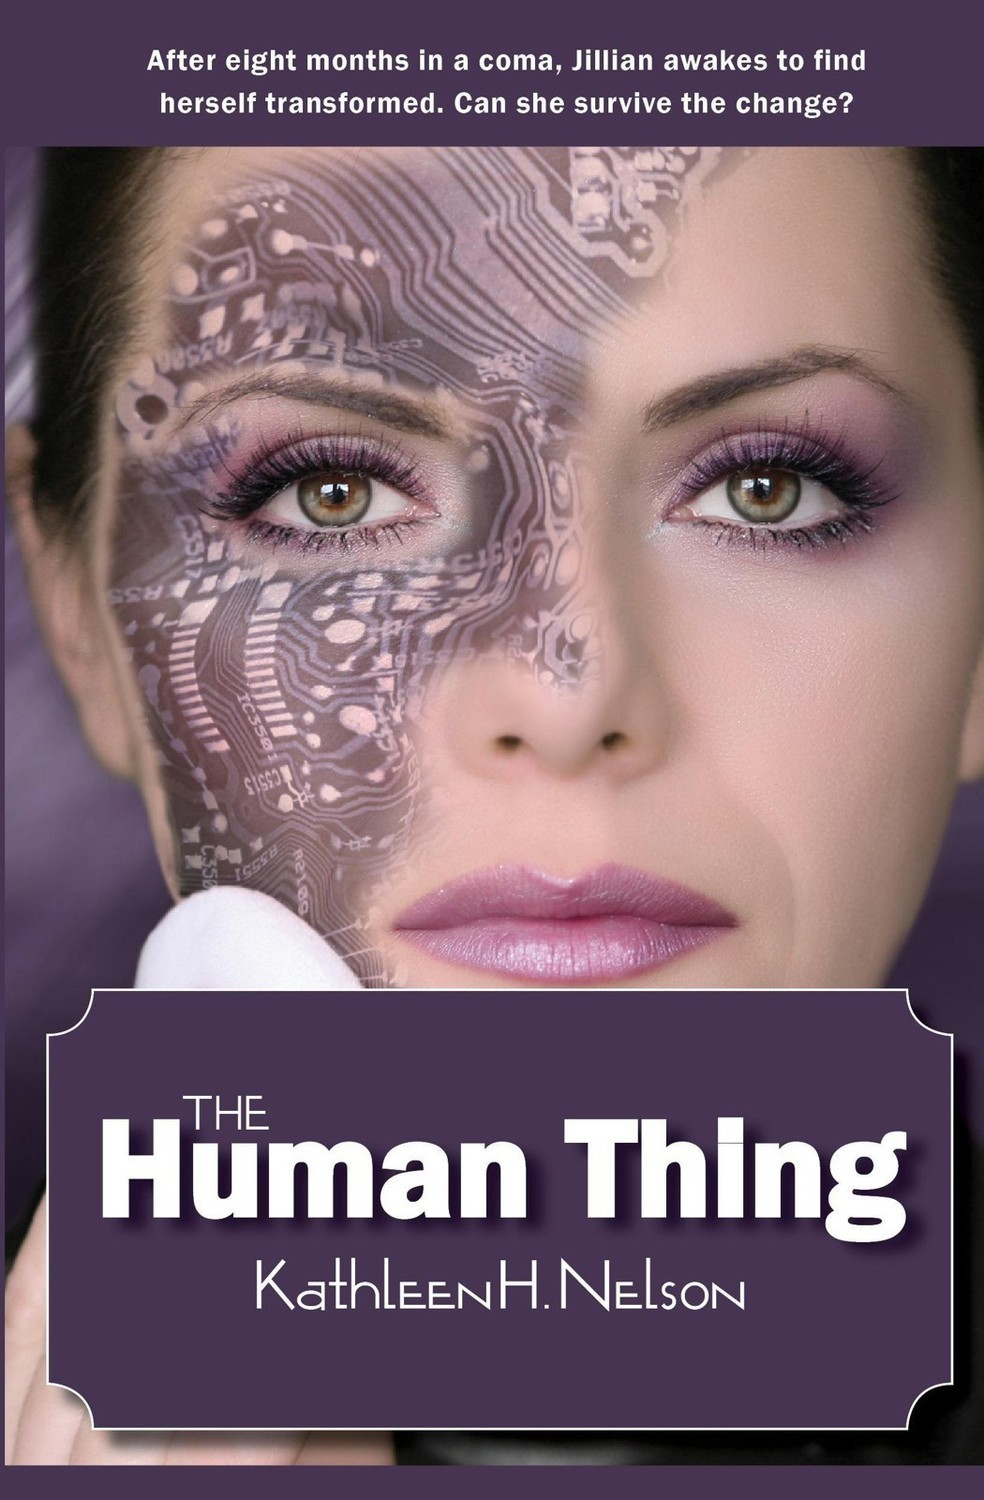 The Human Thing by Kathleen H. Nelson